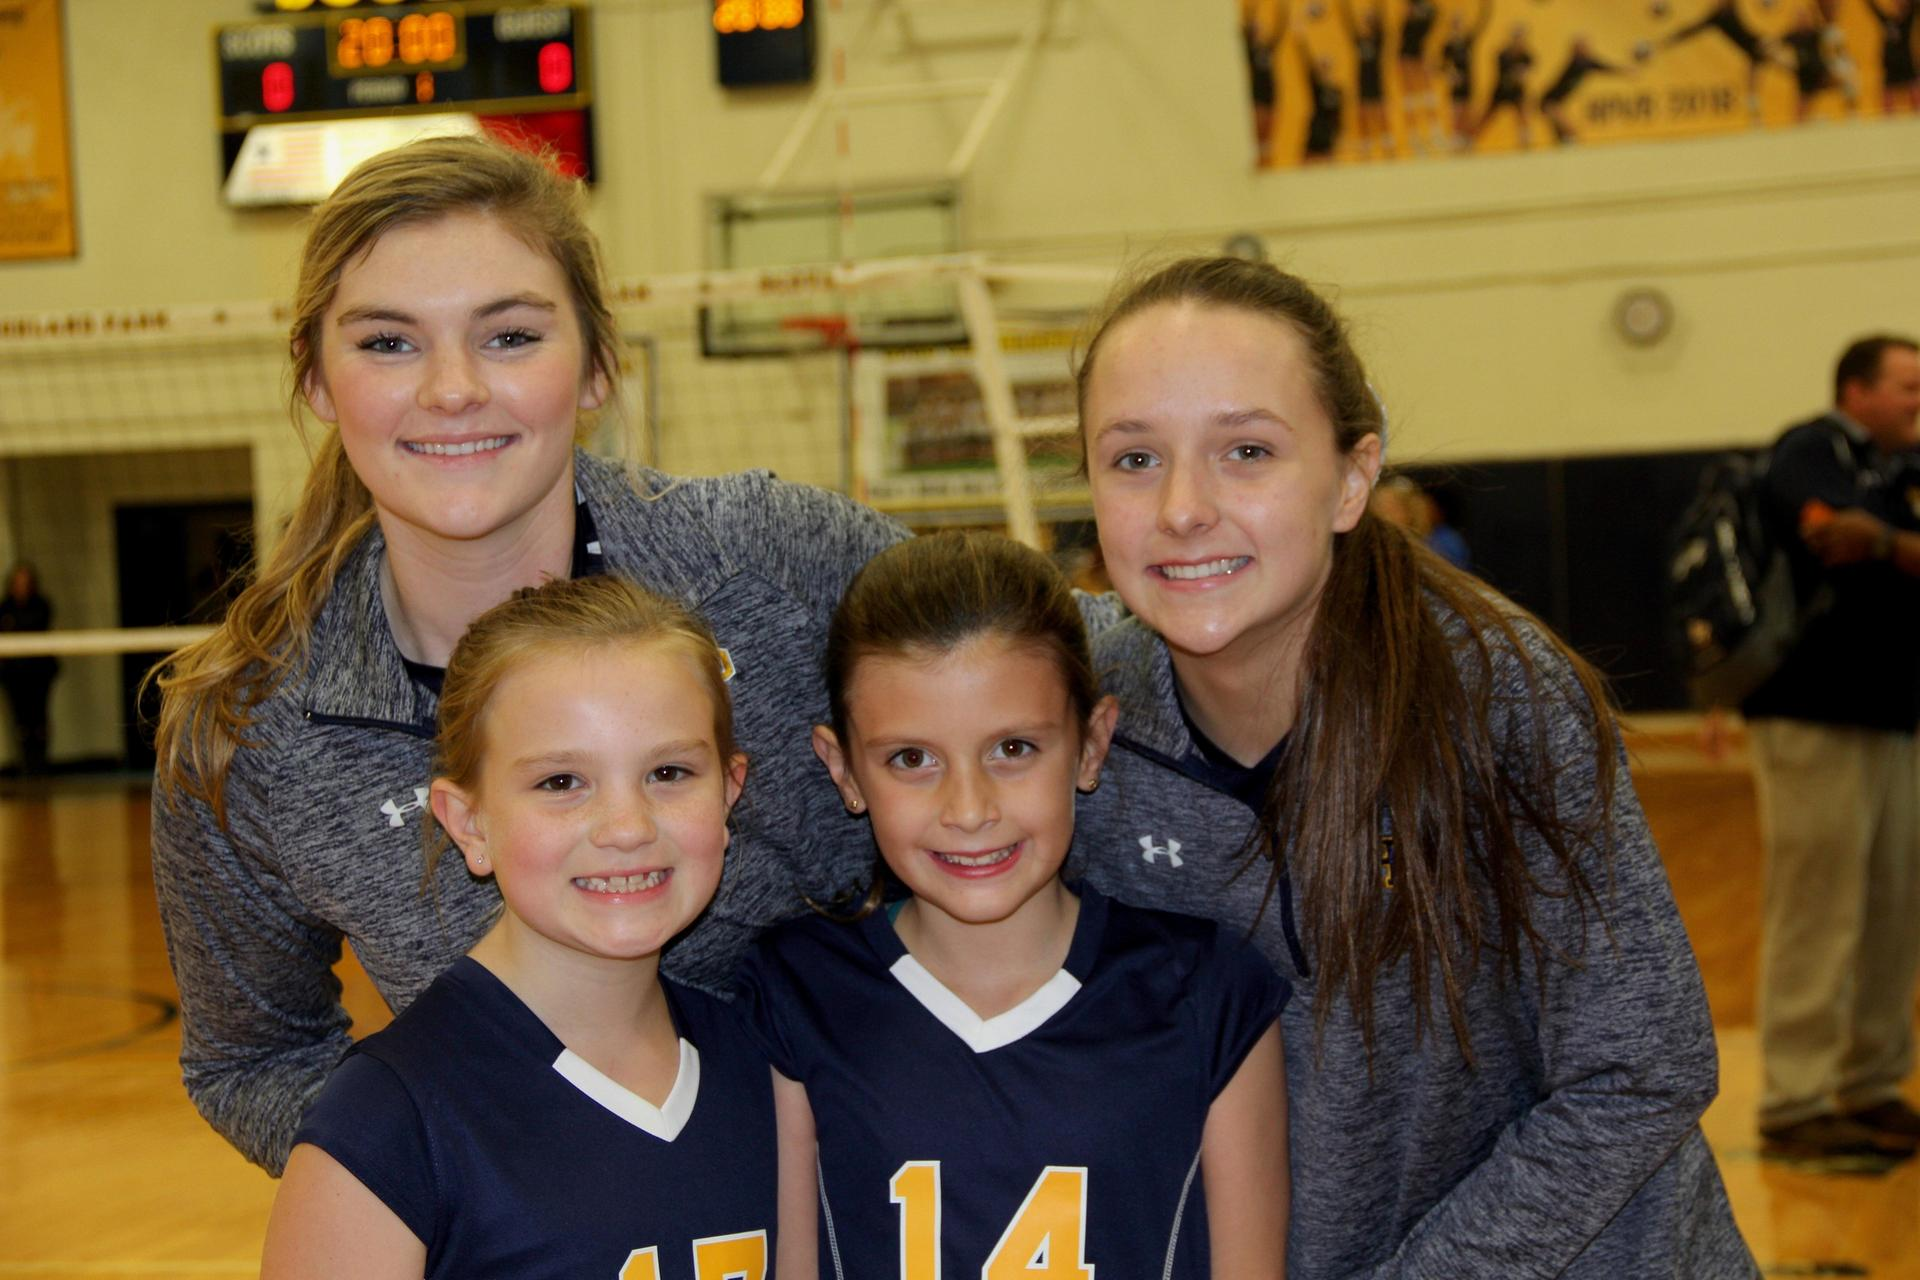 Highland Park Volleyball captains Britton Daugbjerg and Anna Holder with honorary captains Emma Laszewski and Carol Adams